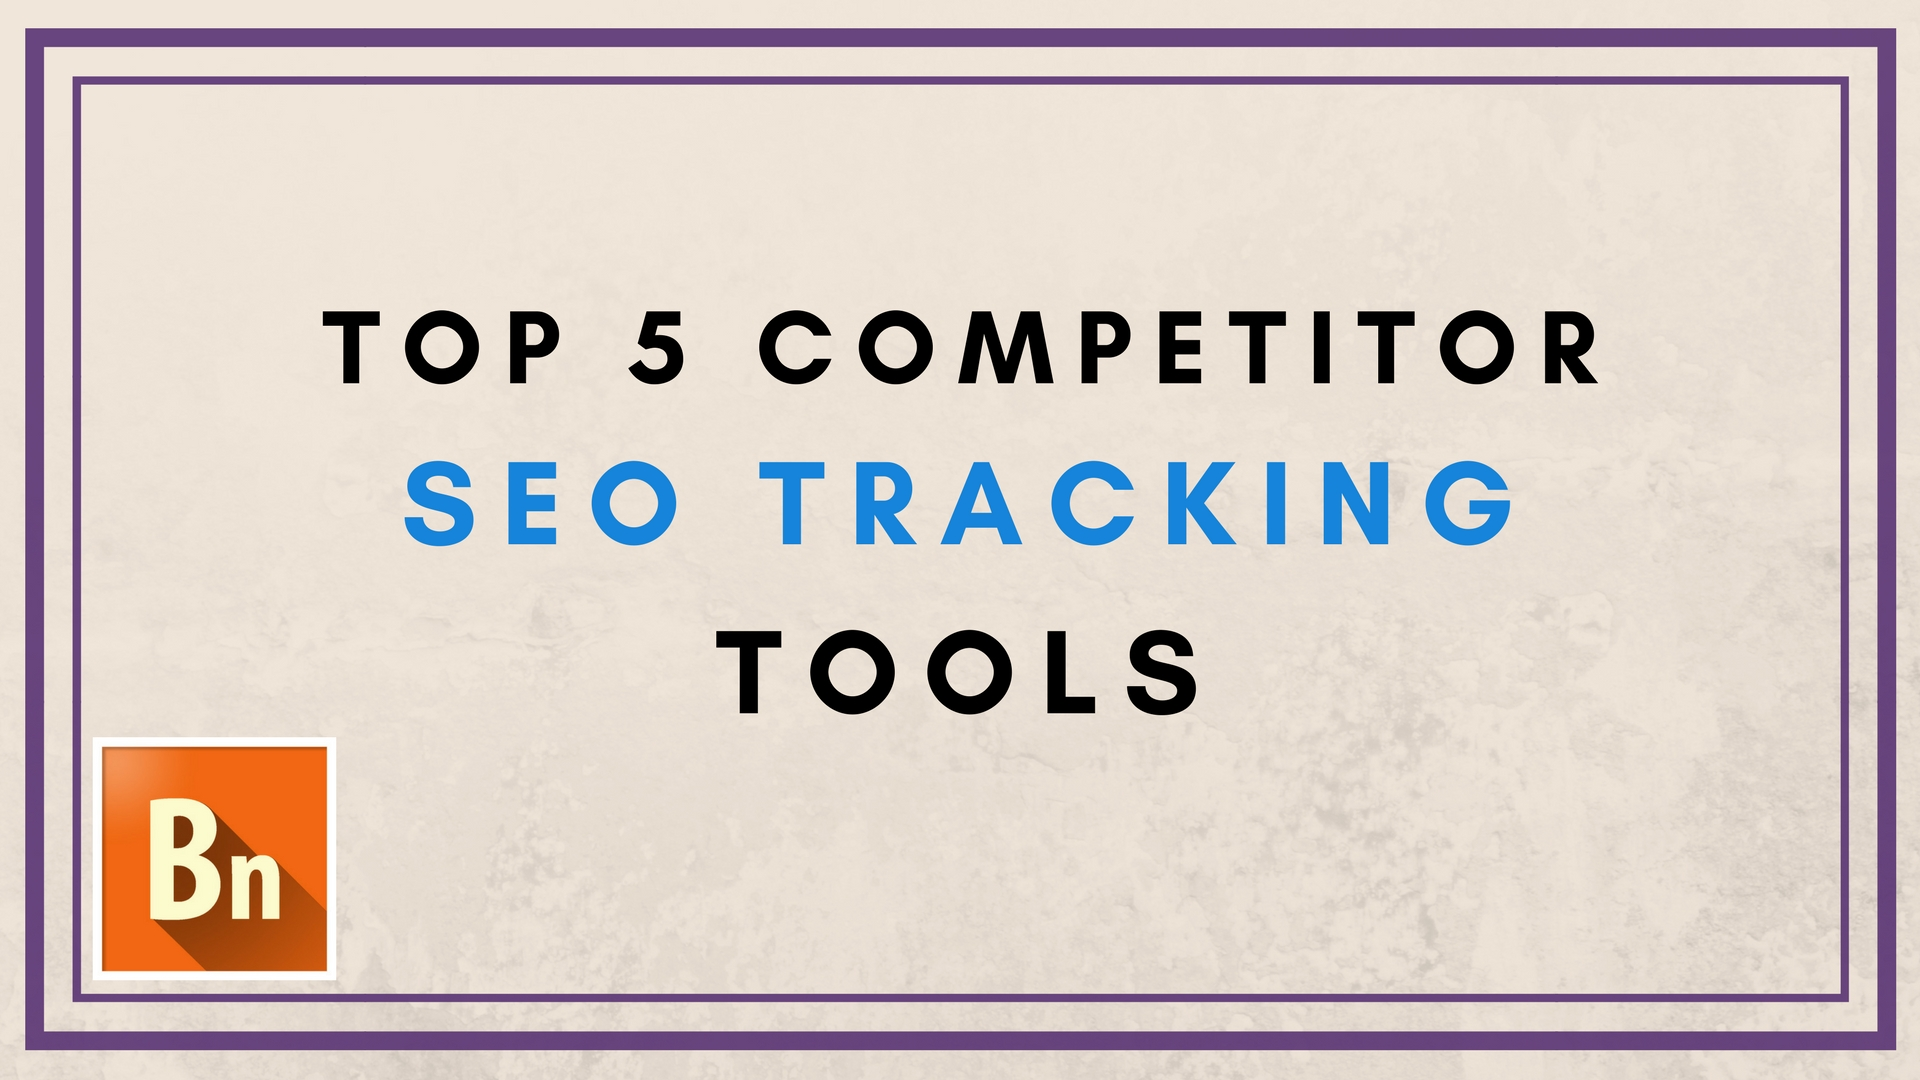 Top 5 Competitor SEO Tracking Tools